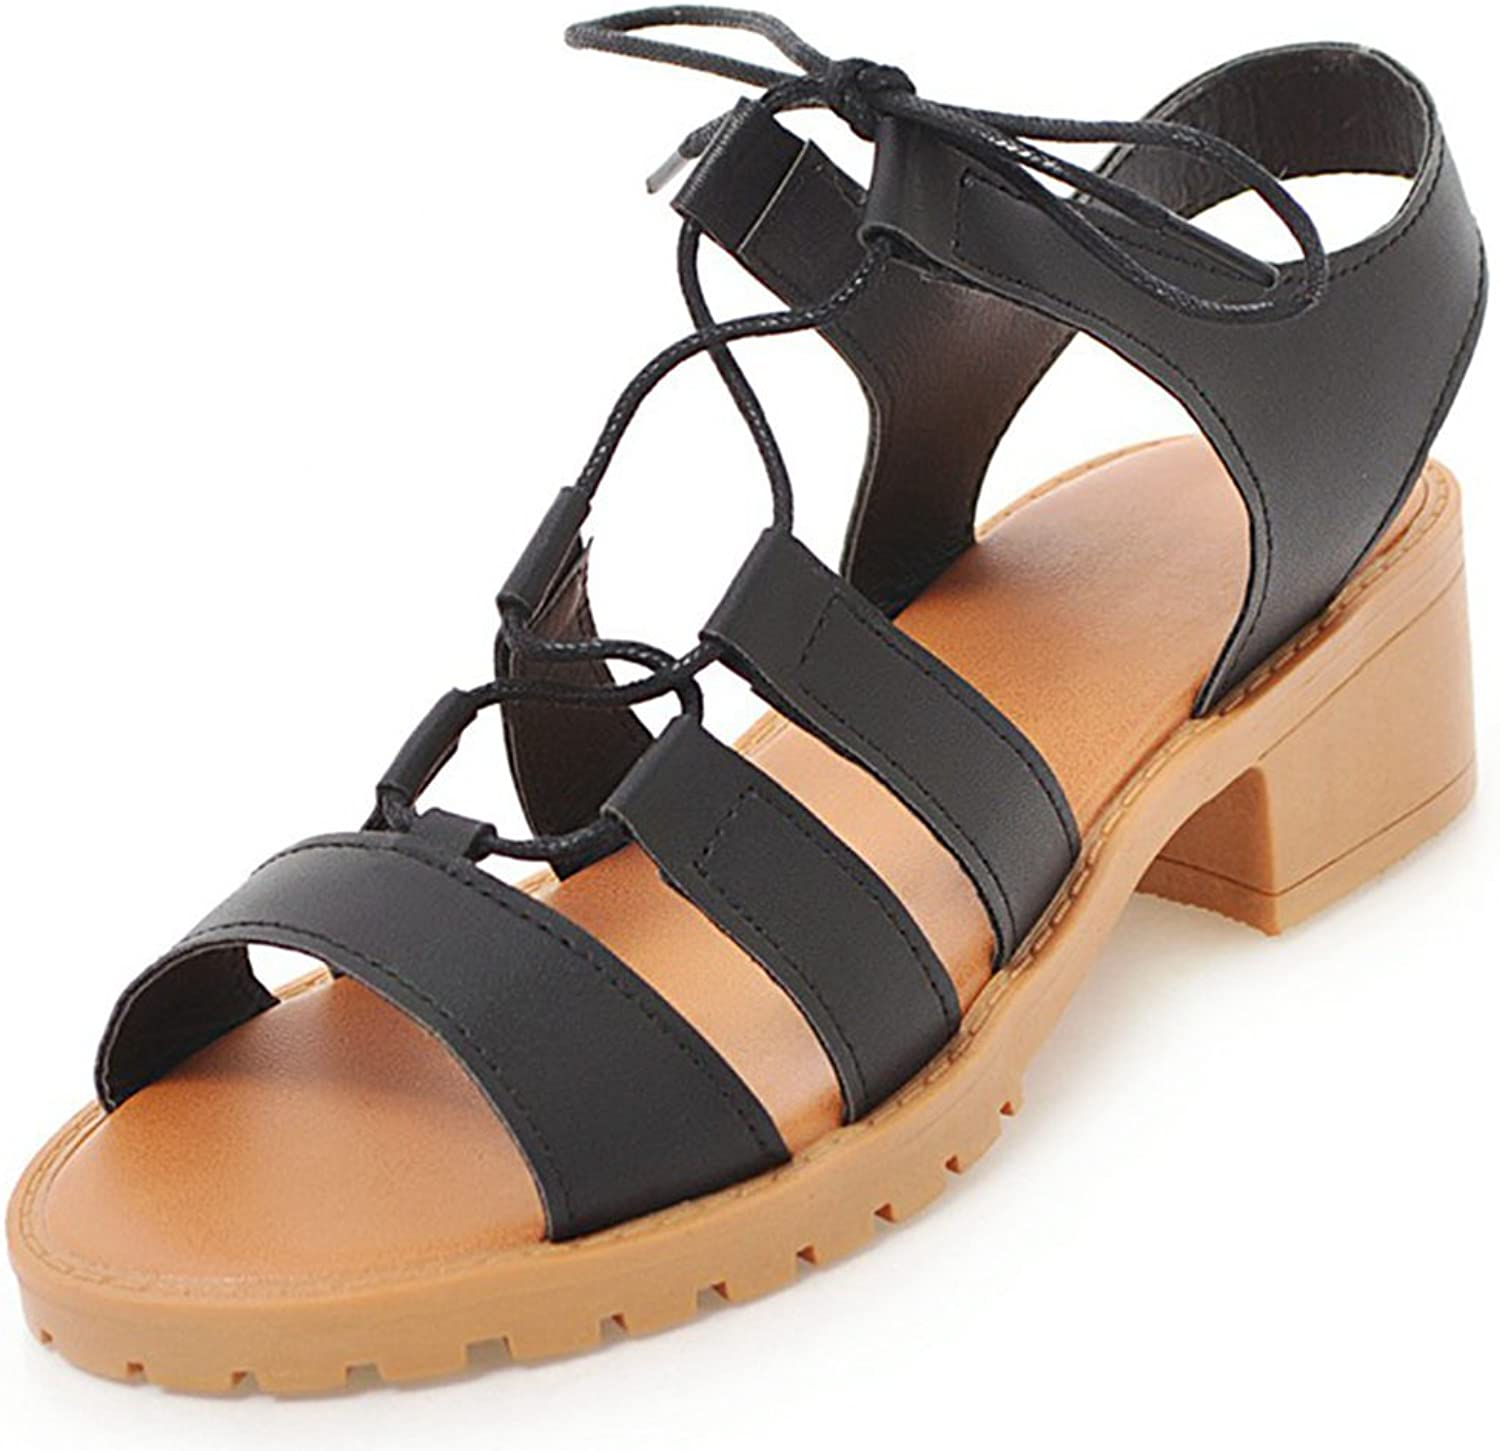 SaraIris Women's Gladiator Chunky Mid Heel Summer shoes Lace up Open Toe Daily Sandals